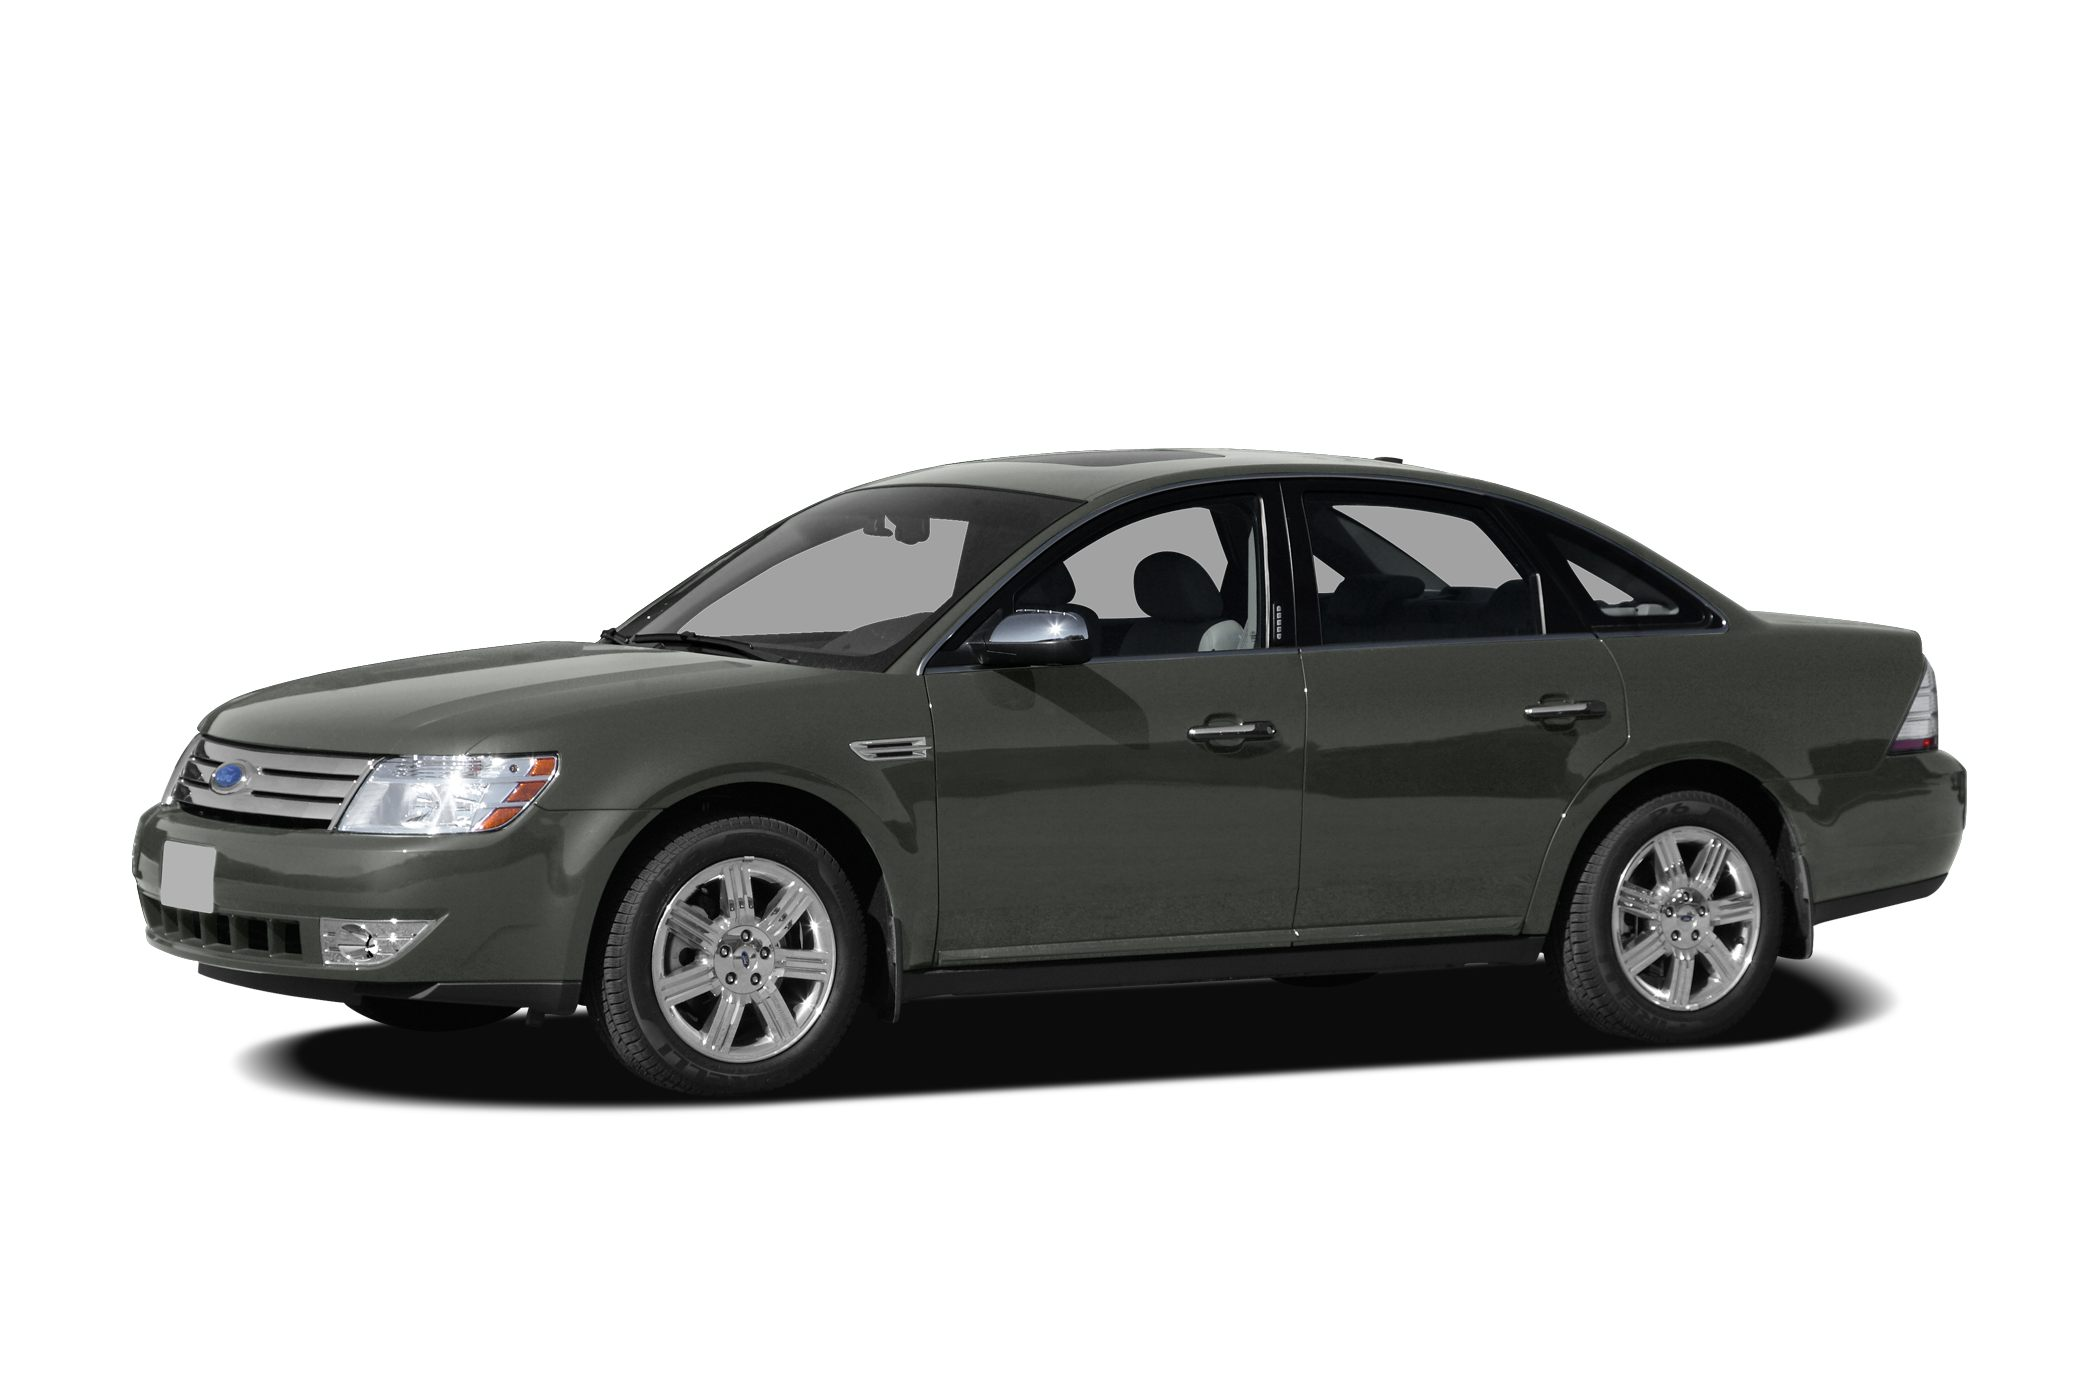 2008 Ford Taurus Limited Sedan for sale in Asheville for $11,986 with 56,129 miles